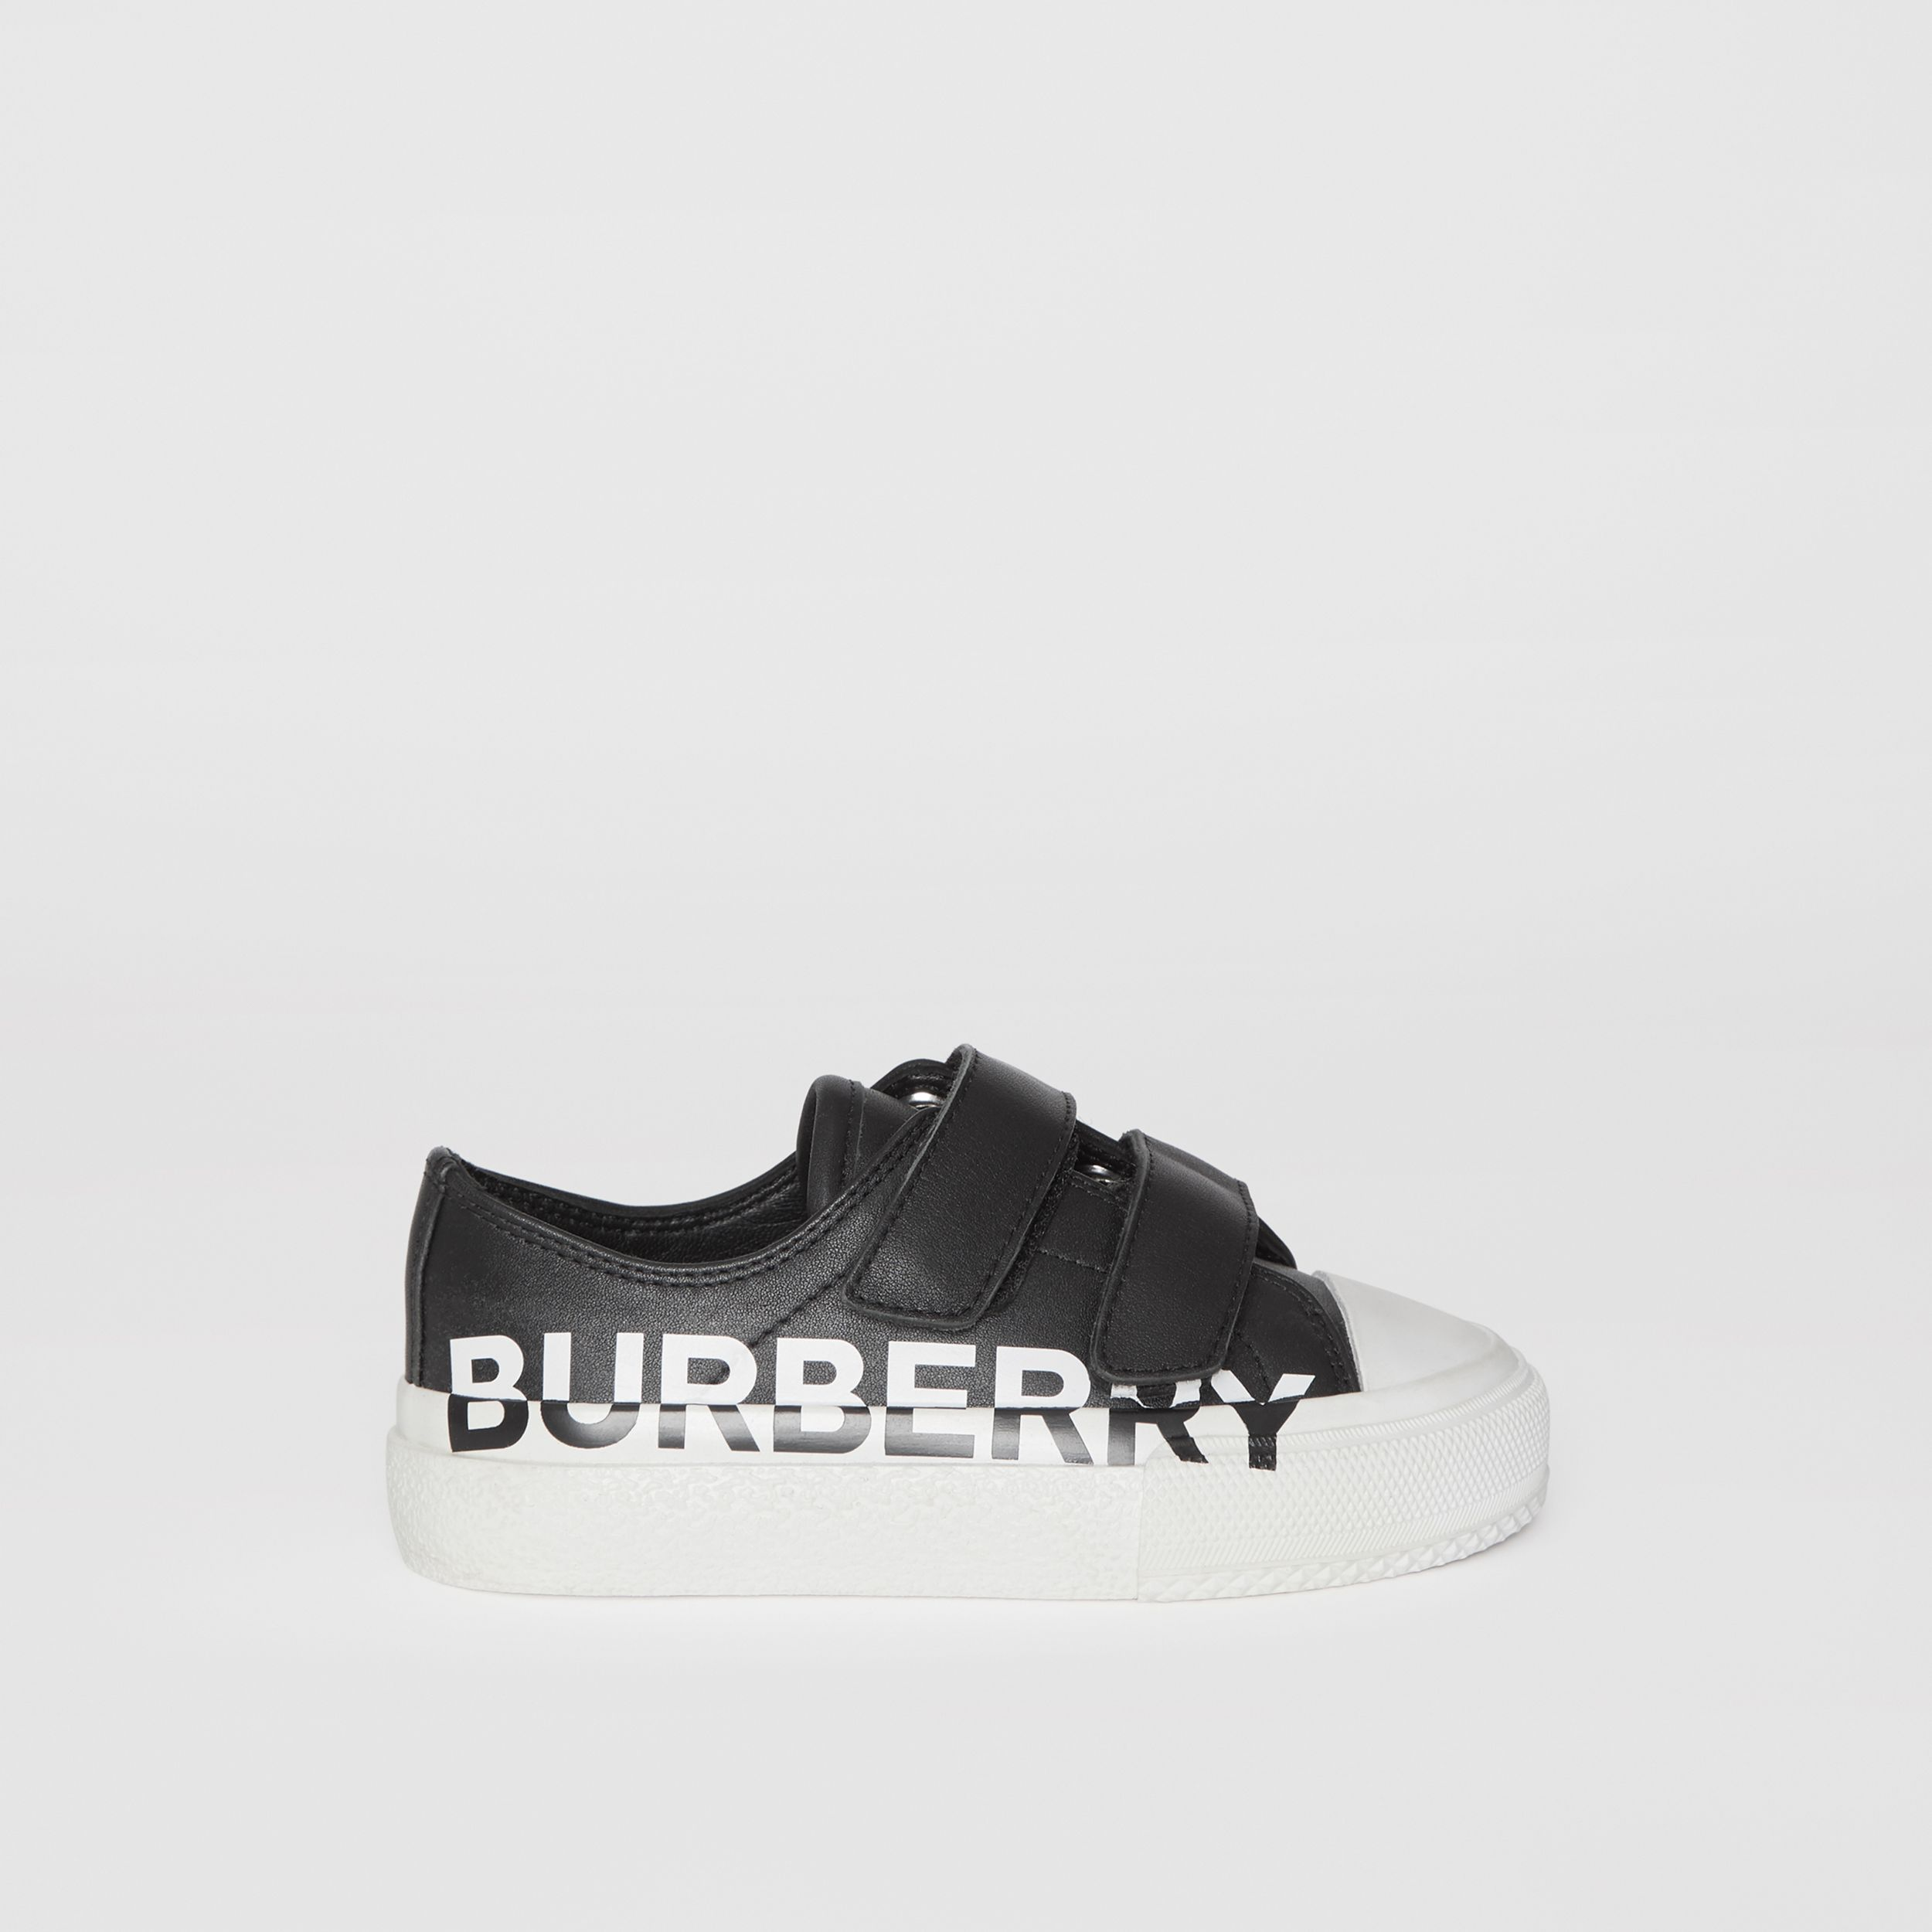 Logo Print Two-tone Leather Sneakers in Black/white - Children | Burberry - 4